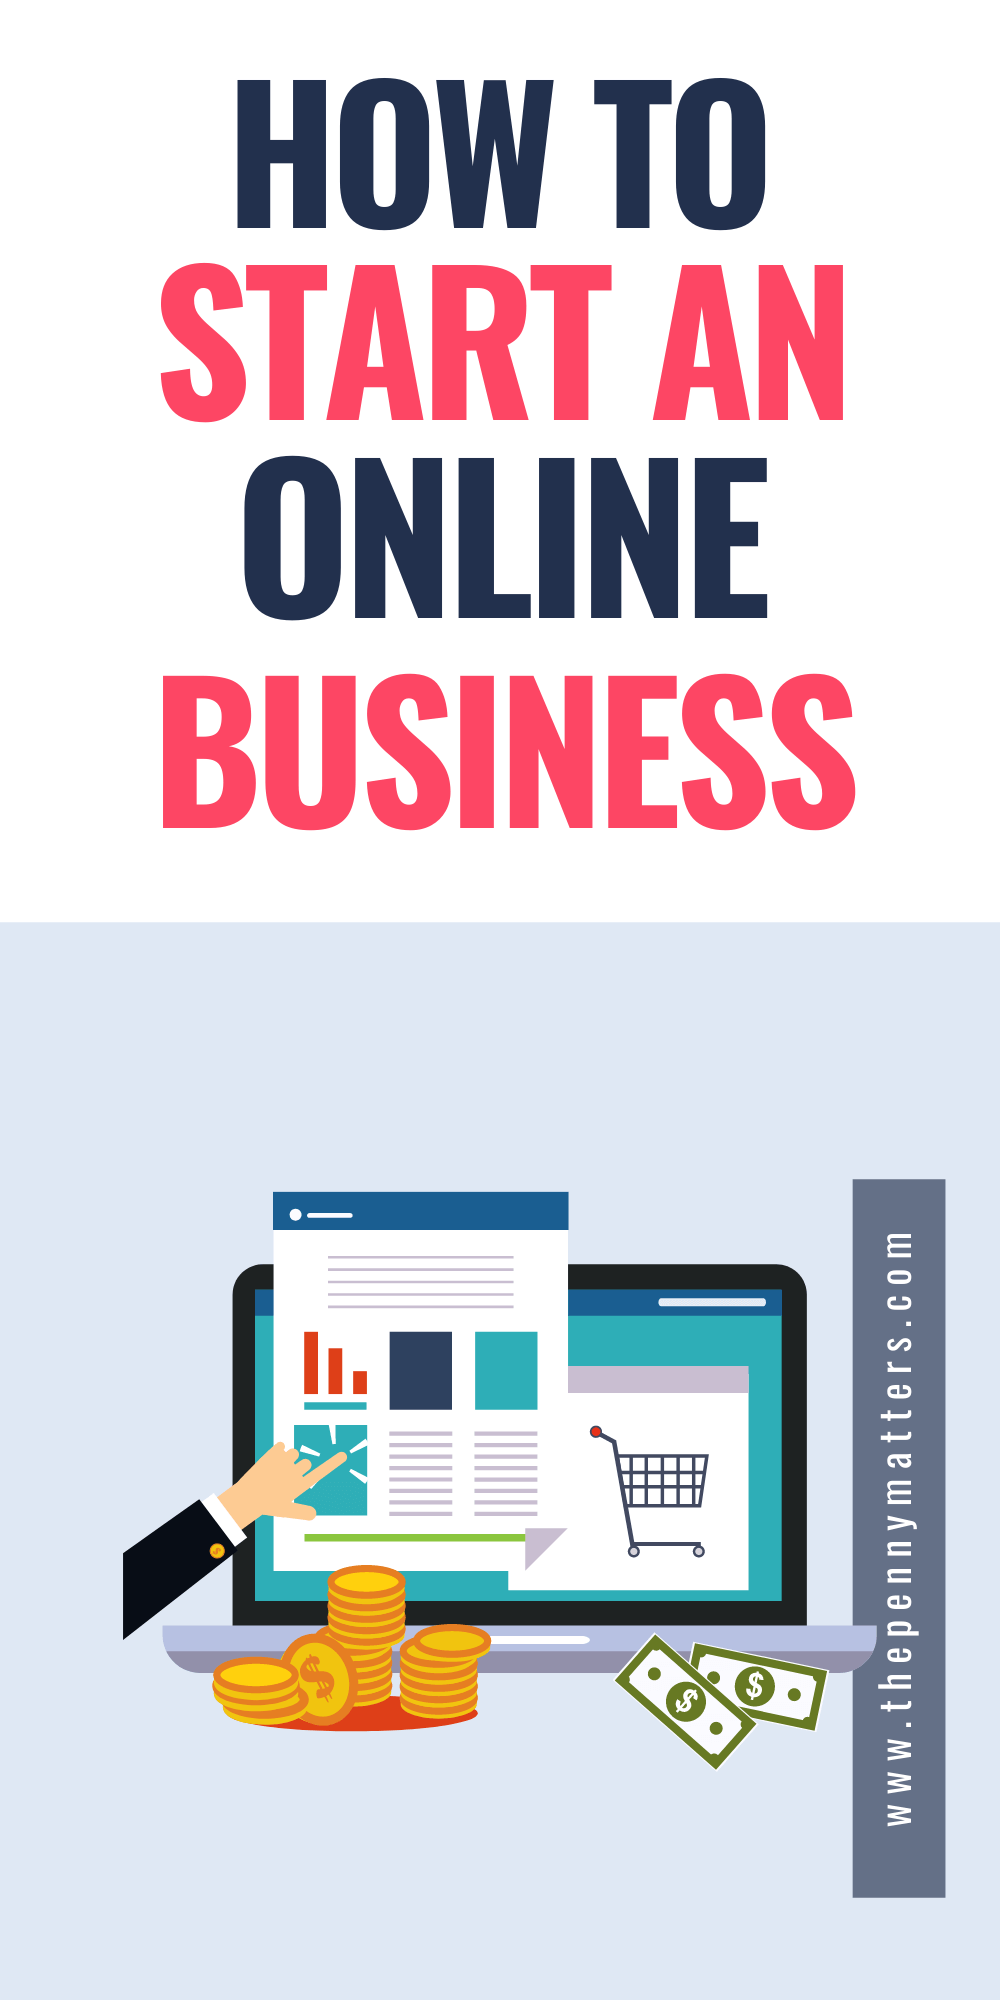 How to Start an Online Business from Home